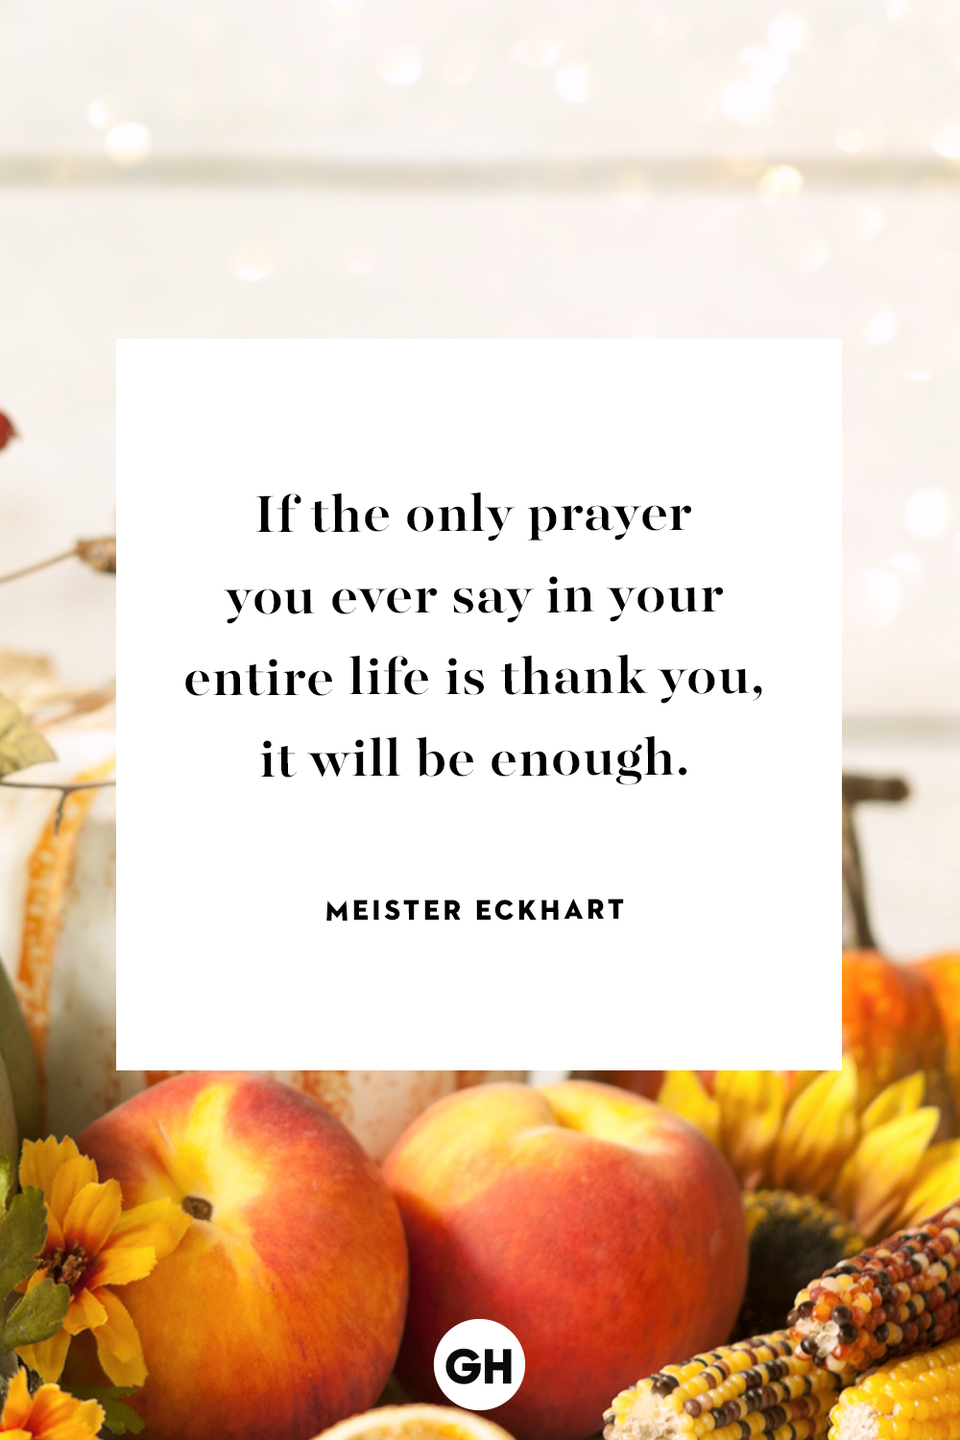 <p>If the only prayer you ever say in your entire life is thank you, it will be enough.</p>